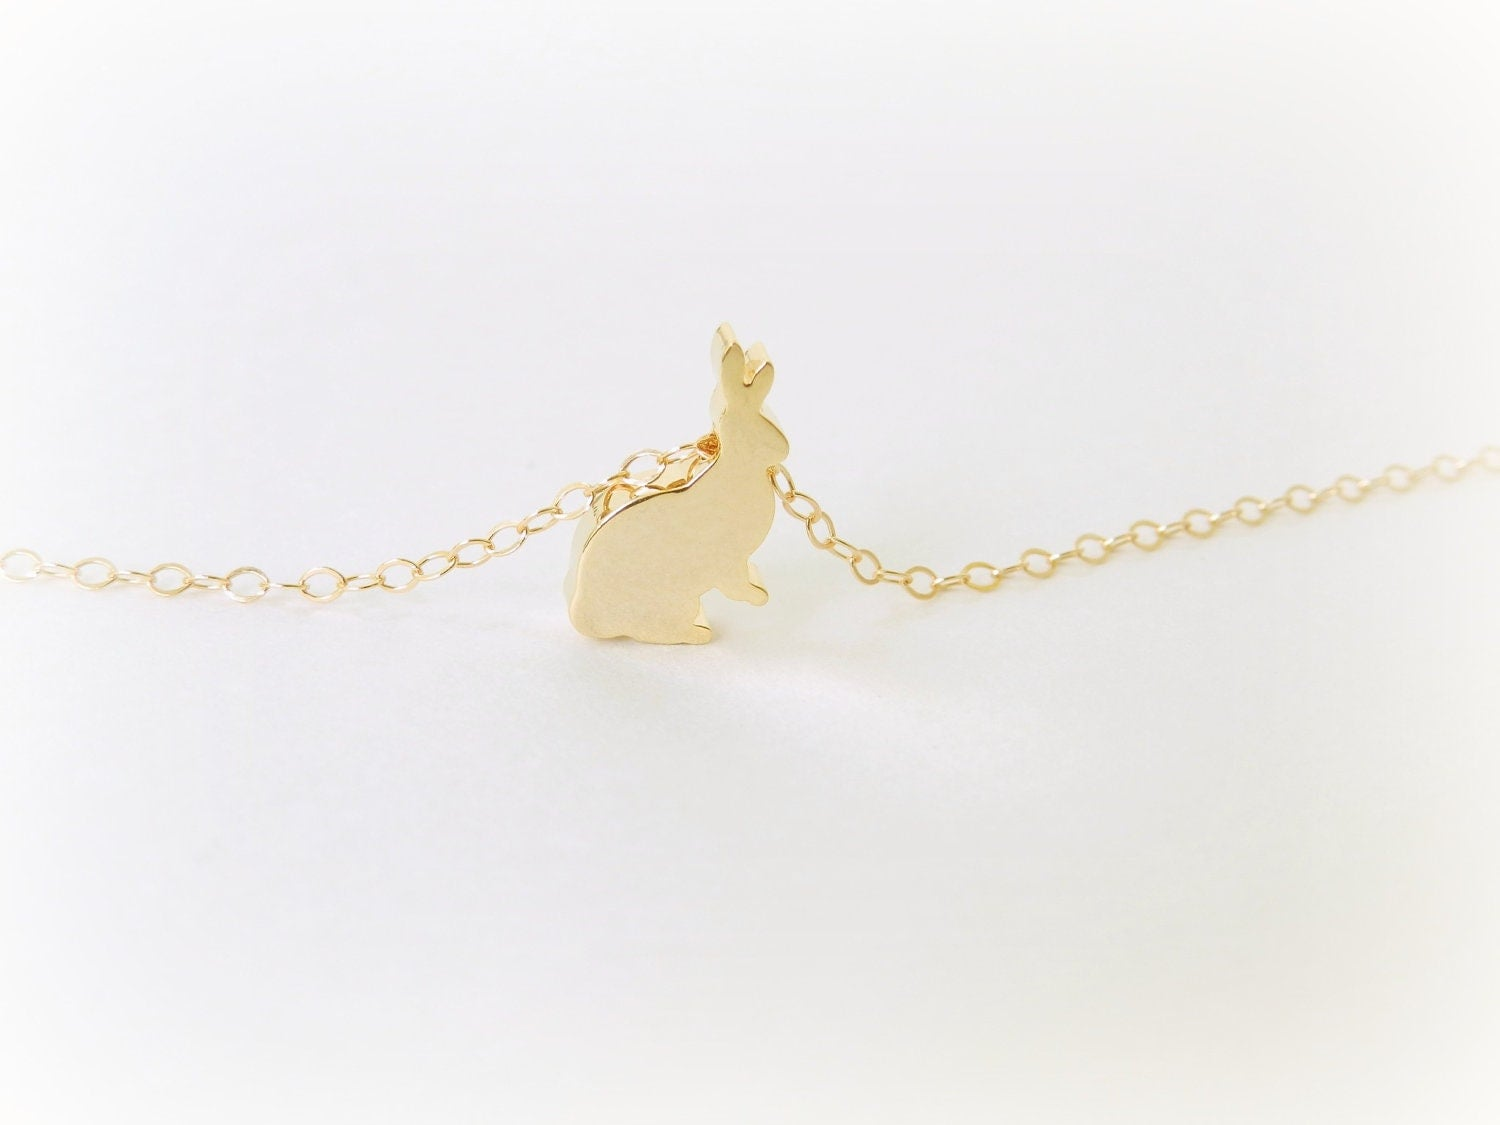 Lucky Bunny necklace with 14k gold filled chain.